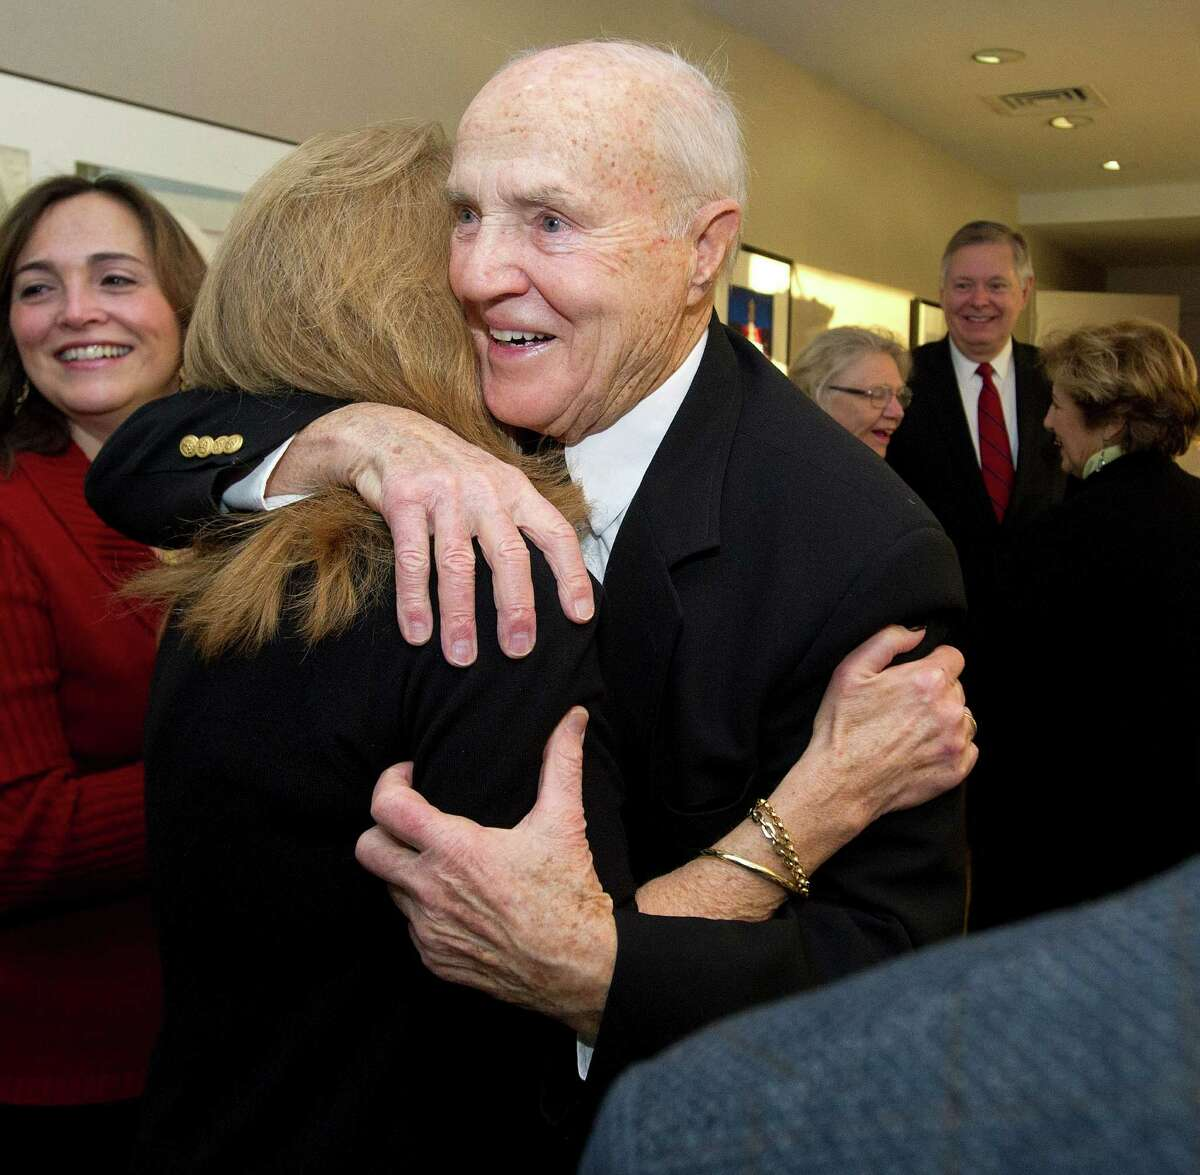 Tim Curtin, special assistant to the mayor, is congratulated by Donna Loglisci, City and Town Clerk, as Curtin is surprised with a ceremony to name him the Citizen of the Year at Government Center in Stamford, Conn., on Thursday, January 9, 2014.